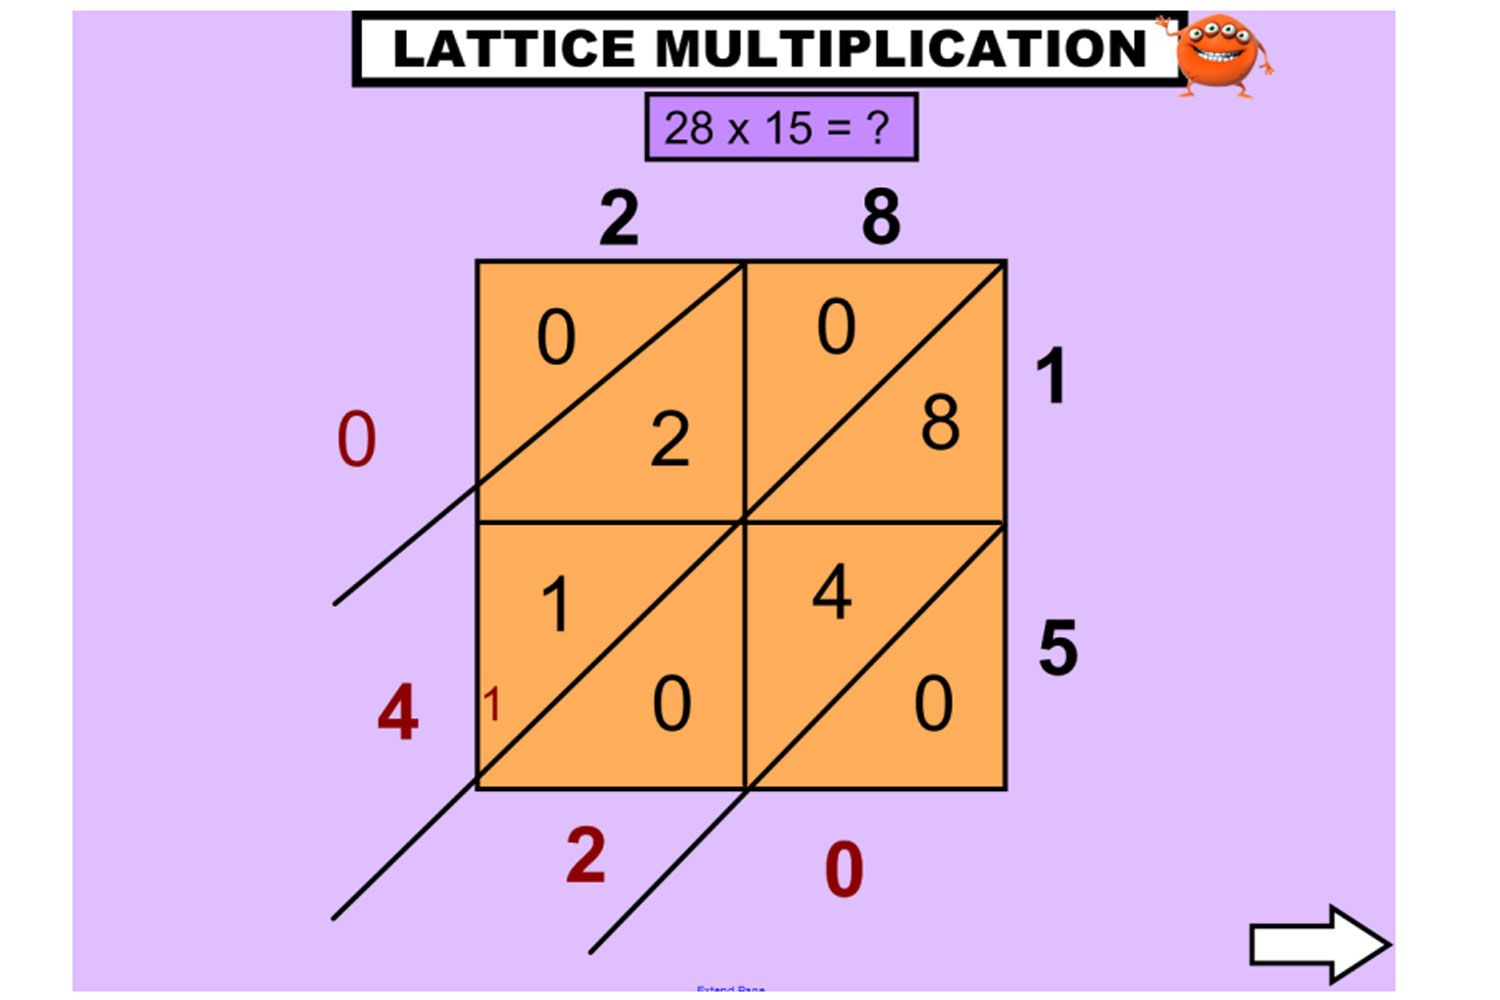 Explore The Lattice Method For Multiplying Large Numbers